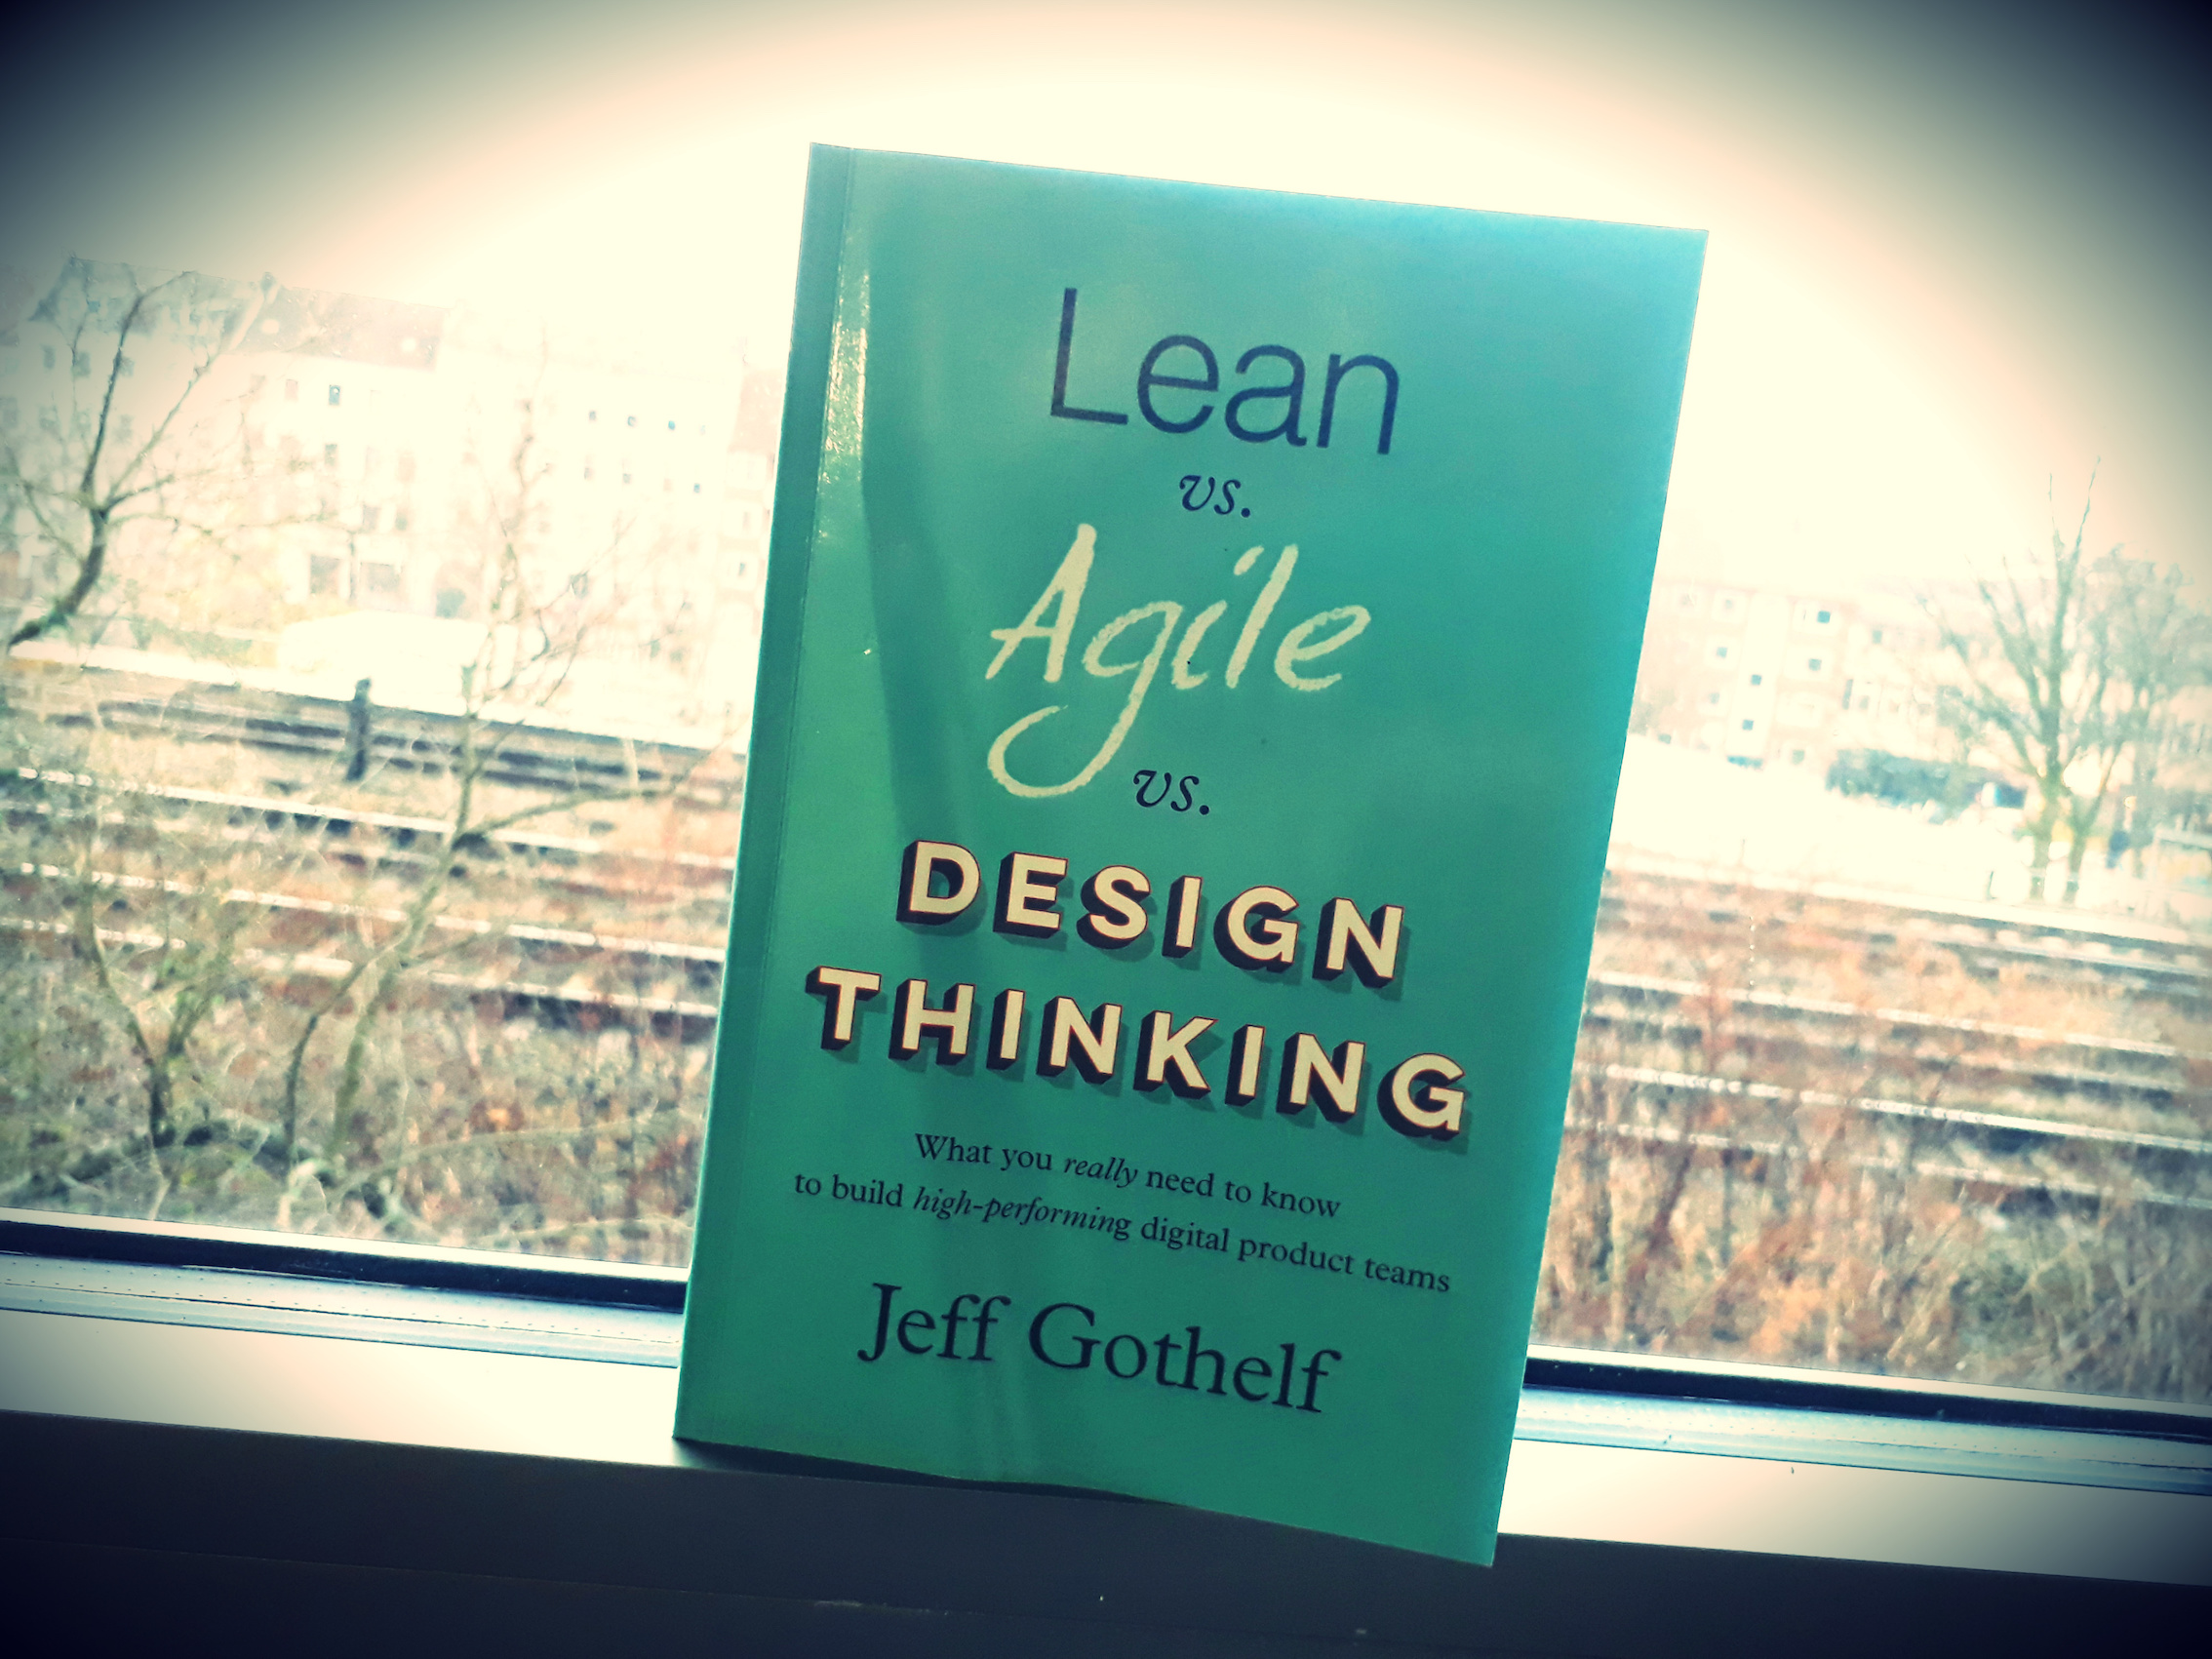 Jeff Gothelf - lean vs. agile vs. Design Thinking